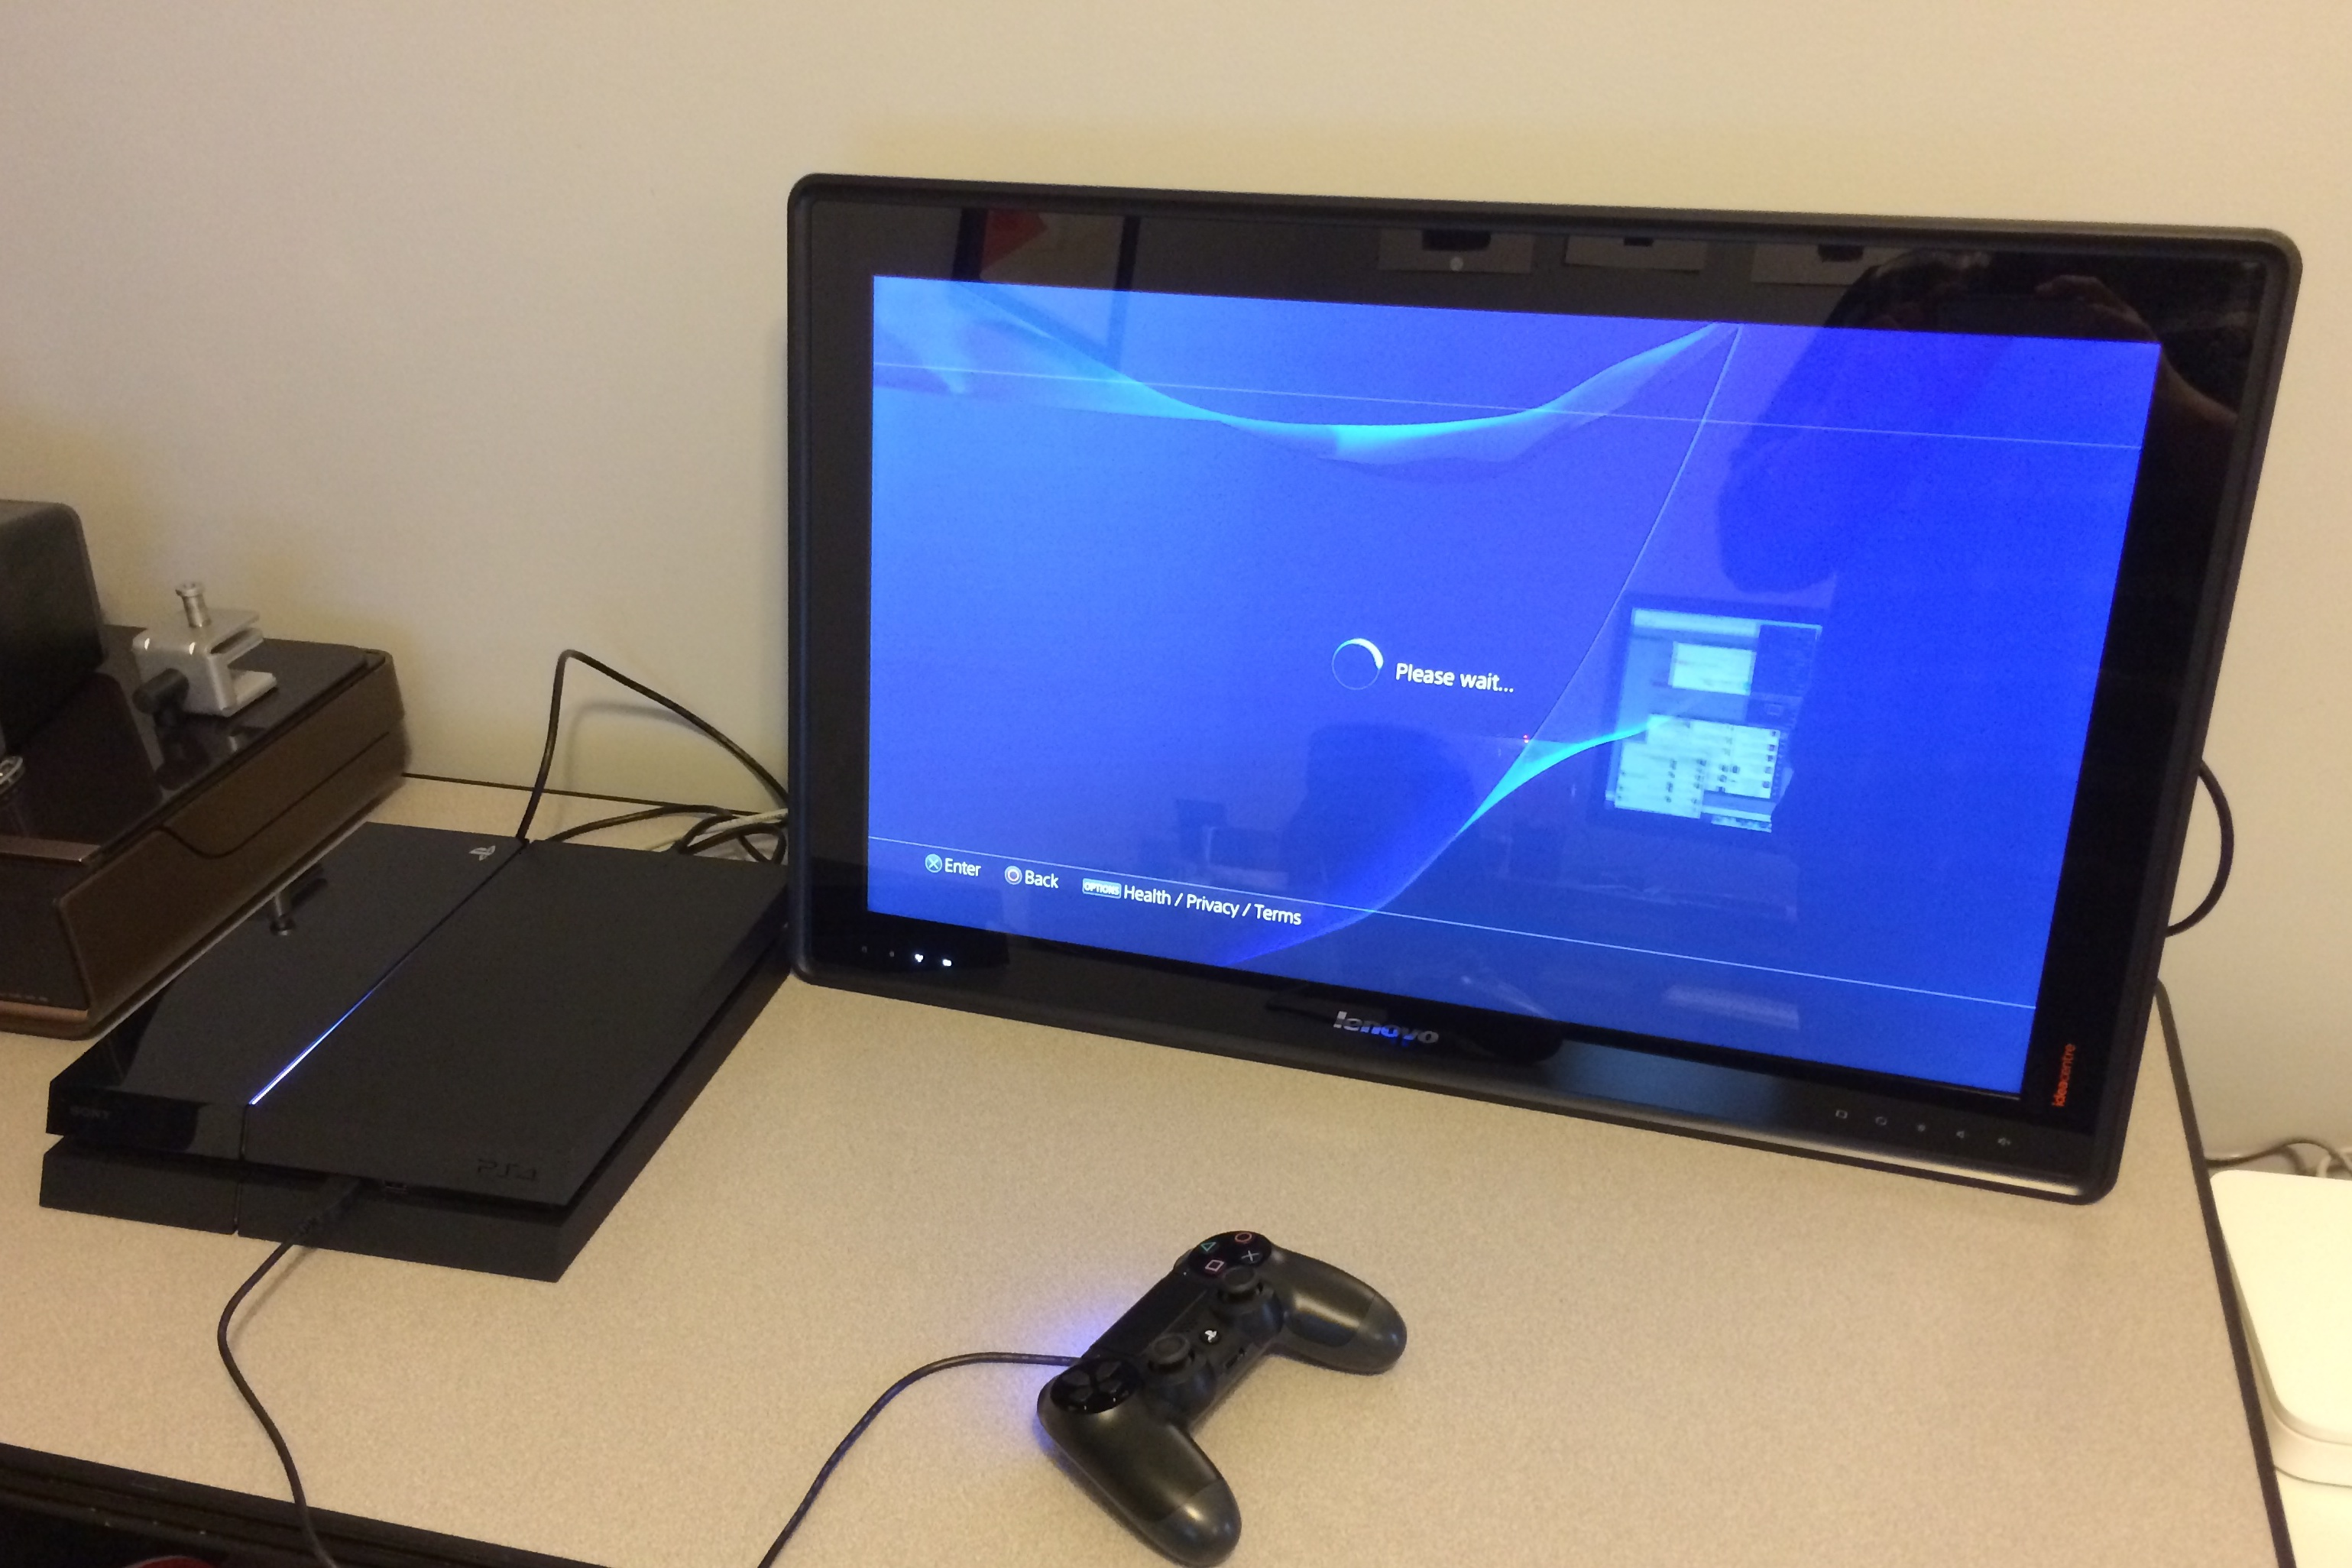 How To Setup The Ps4 Video